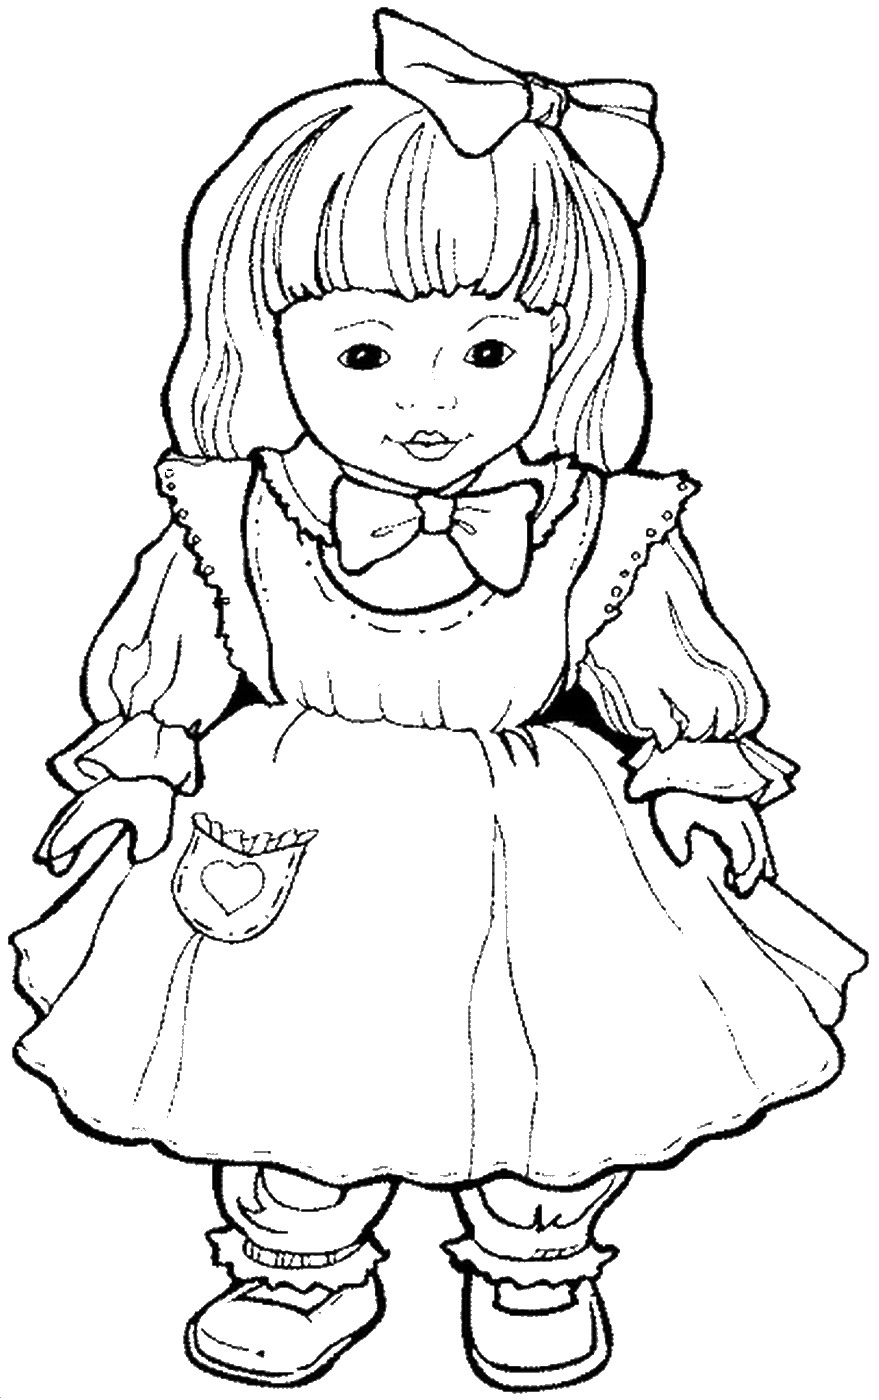 coloring doll print doll coloring pages best coloring pages for kids print coloring doll